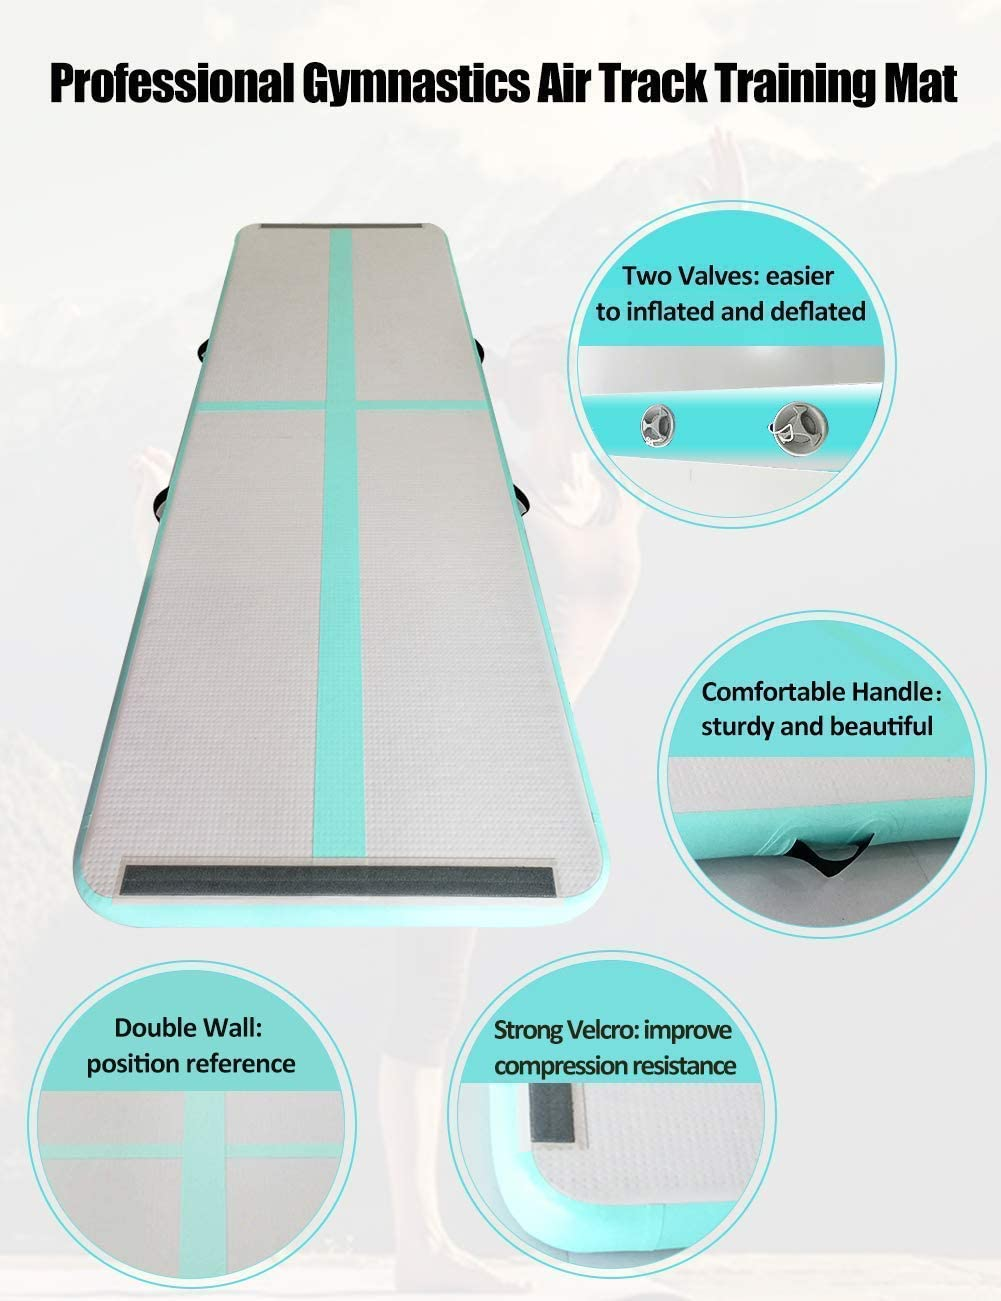 Cheerleading Yoga Gym AIRMAT FACTORY//Ejia Air Track Gymnastics Tumbling AirFloor mat with Gwind Electric Pump//Tokyo Championship//for Fitness,Schools Home